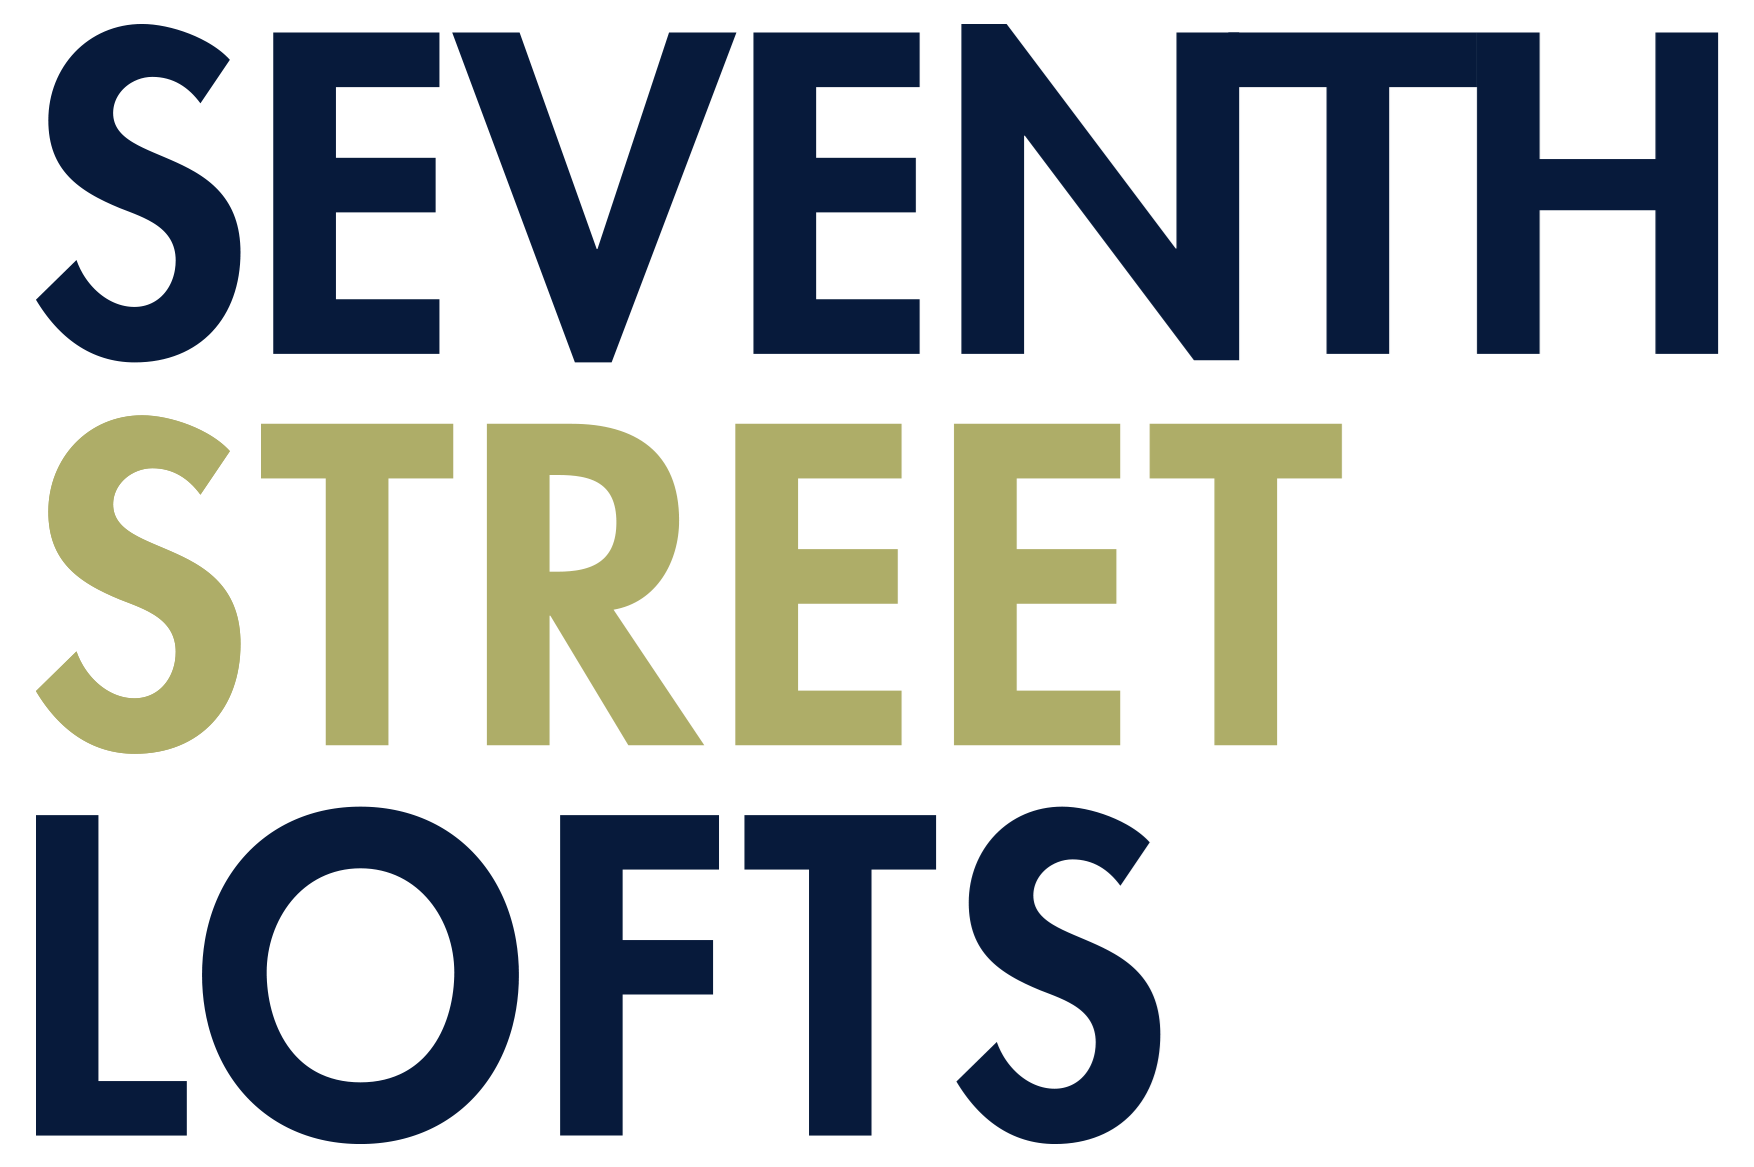 Seventh Street Lofts Property Logo 46